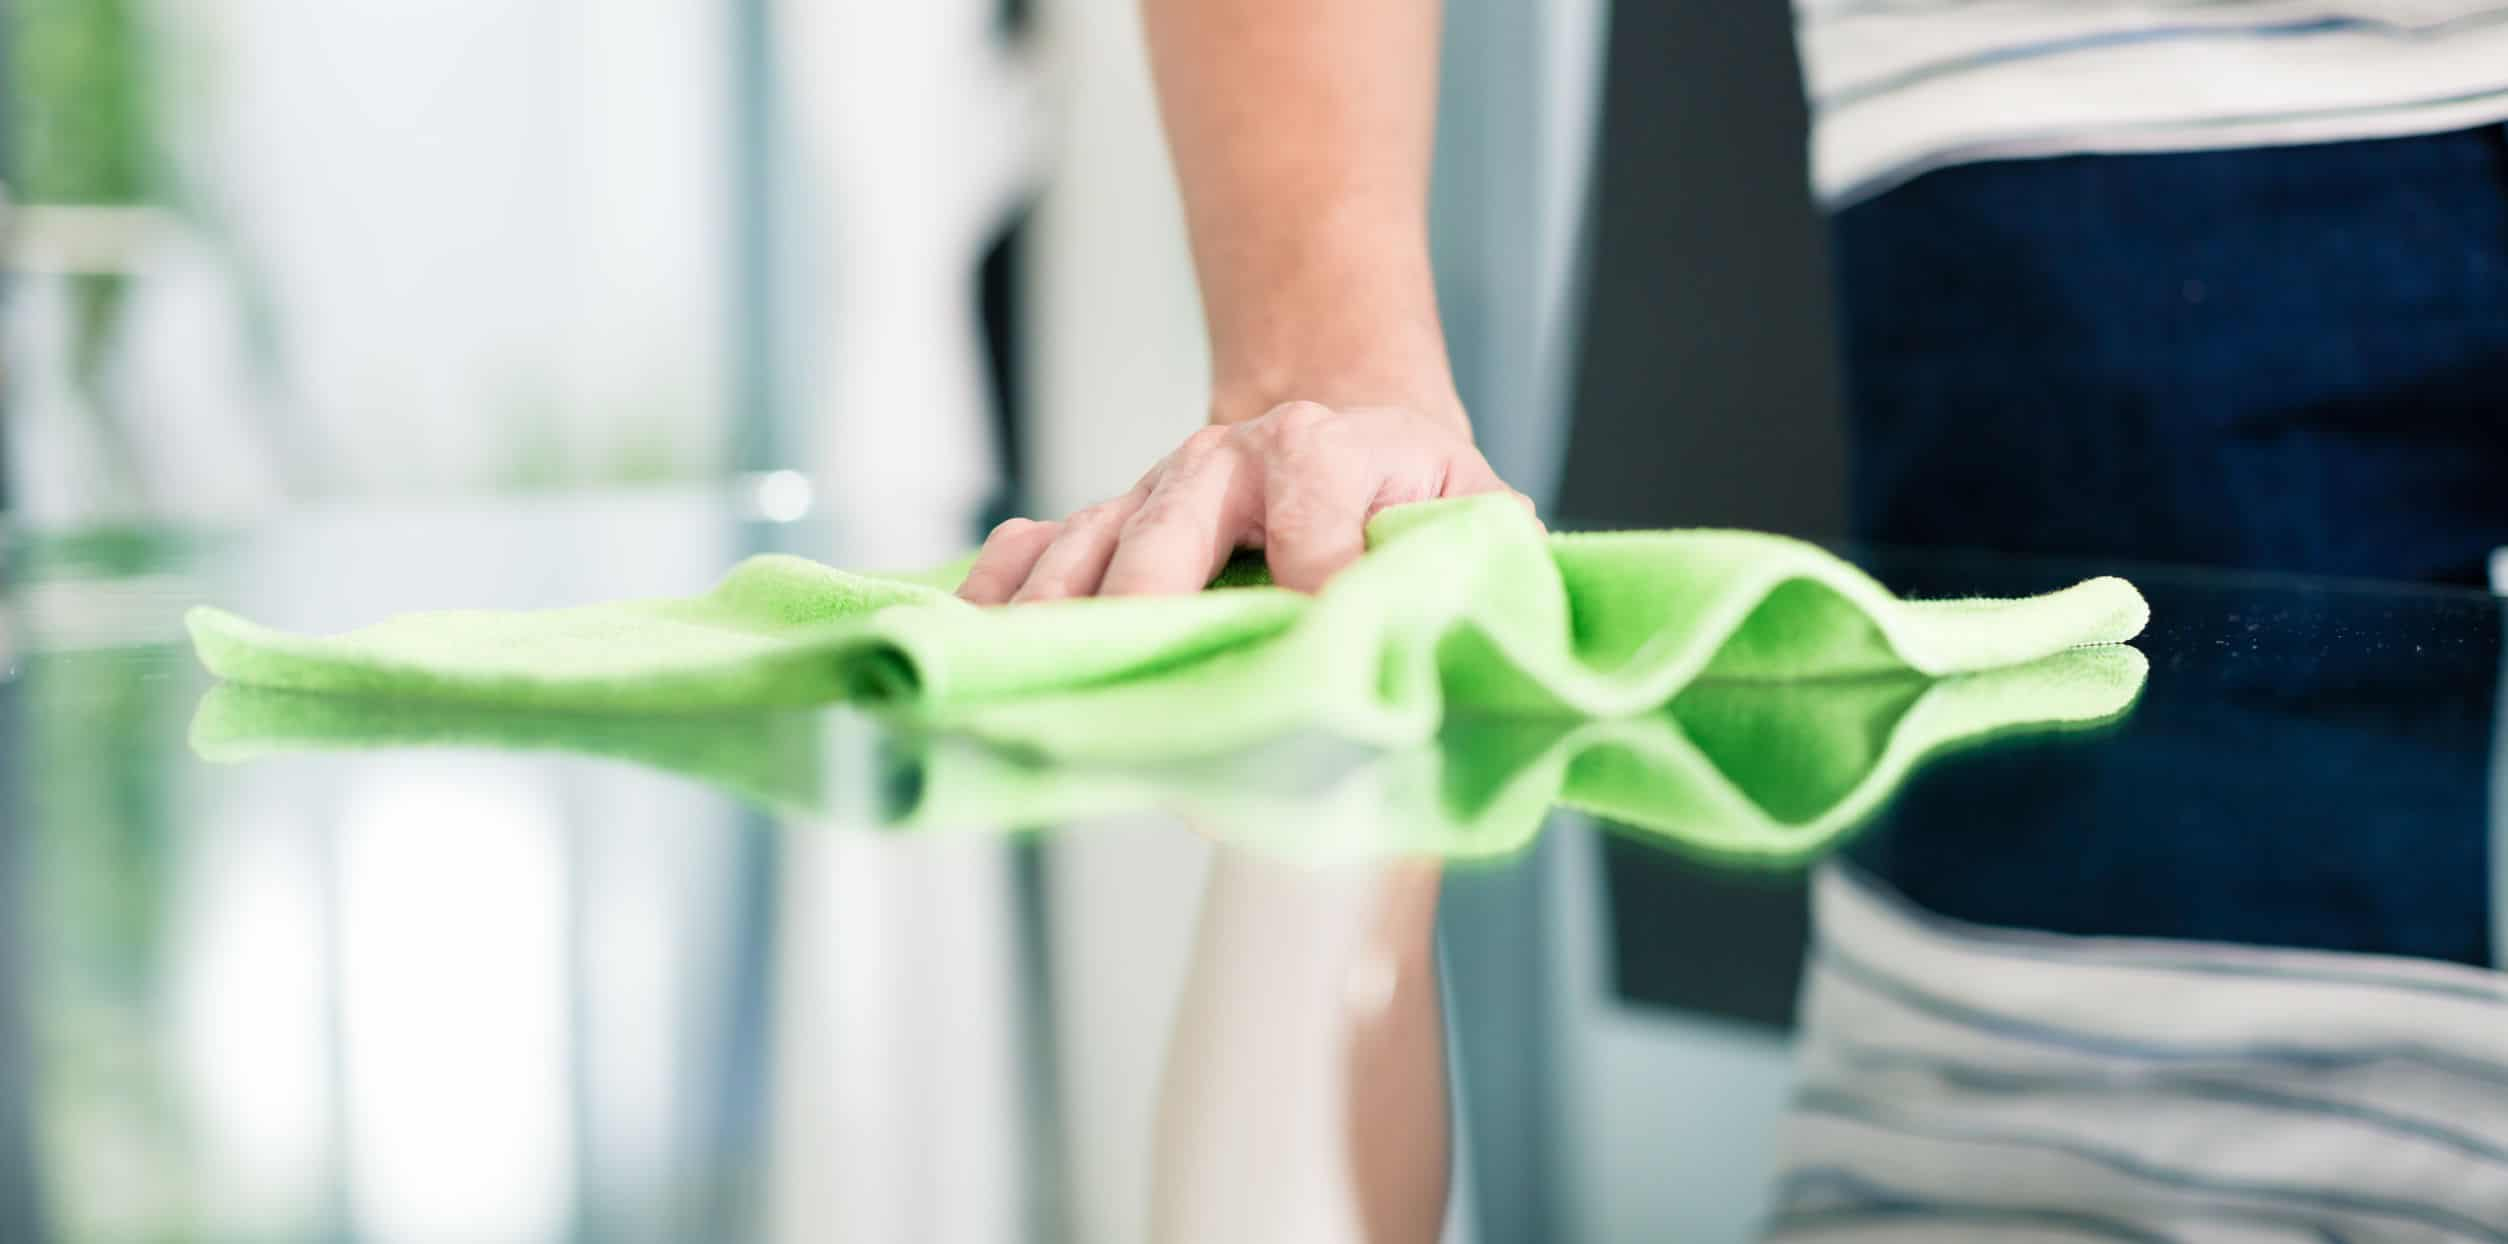 Man cleaning table in home with cloth